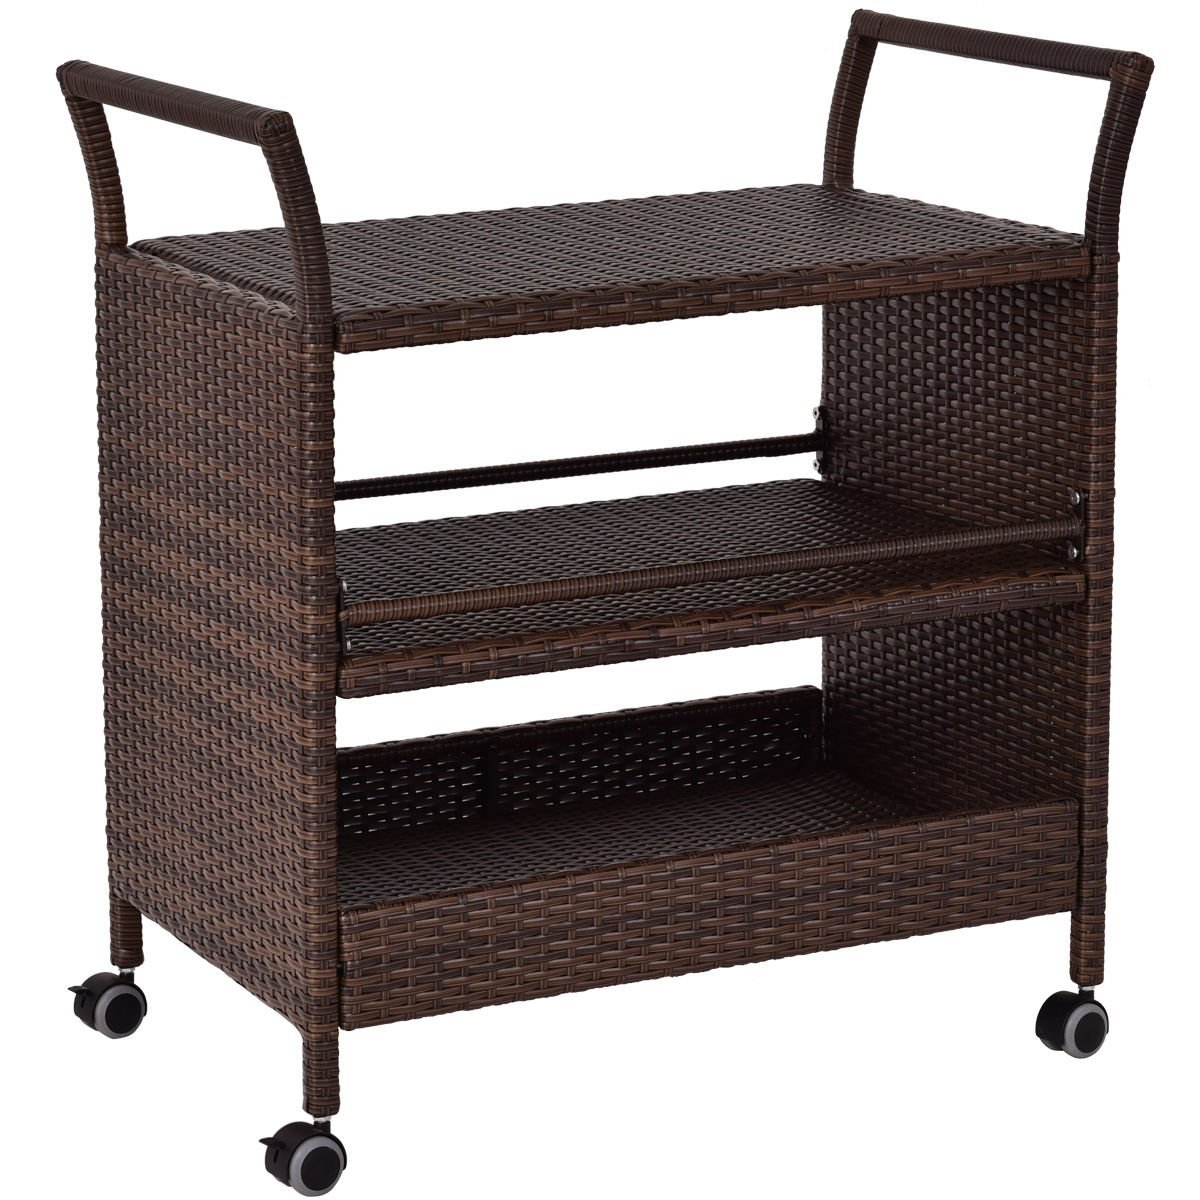 "Globe House Products GHP Outdoor 32.3"" Wx 19.9"" Dx35 H Durable and Sturdy Rolling Rattan Serving/Bar Cart"